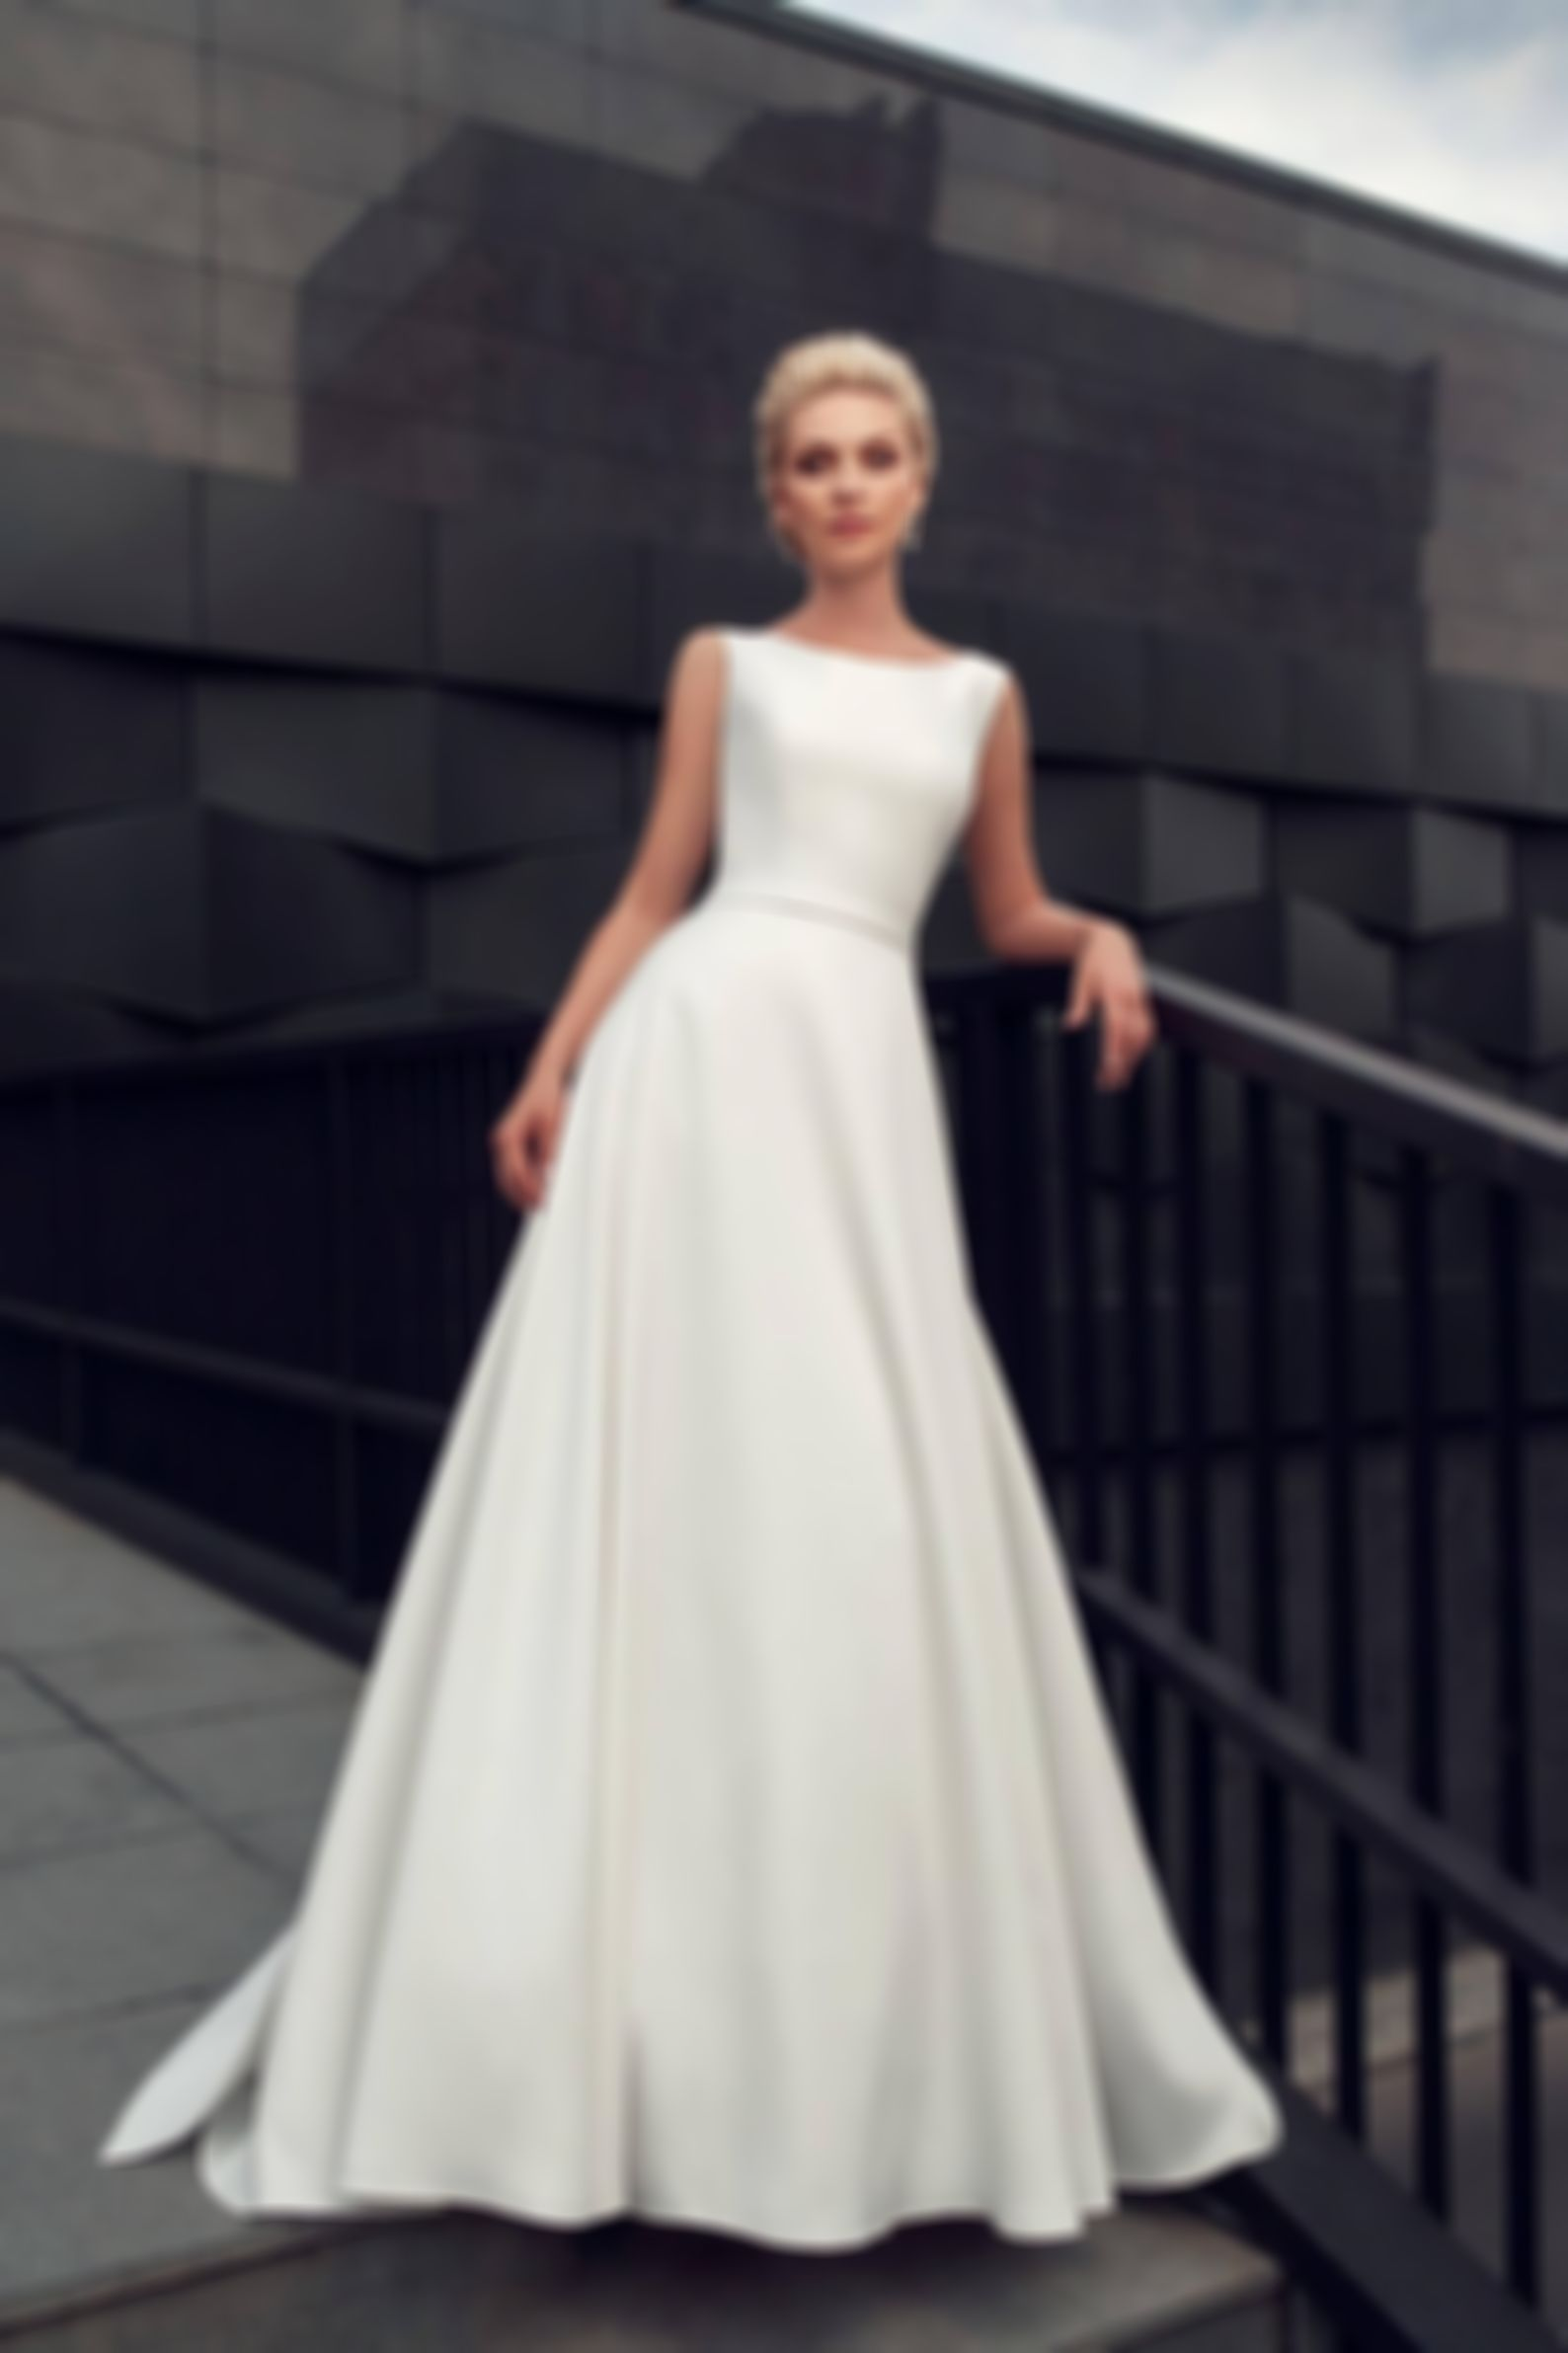 Fashion New Wedding Dresses Embellished Bridesmaid Dresses High End Bridal Boutiques Married Dress Egyptian Wedding Dress Sexy Mermaid Wedding Dresses Free Shipping